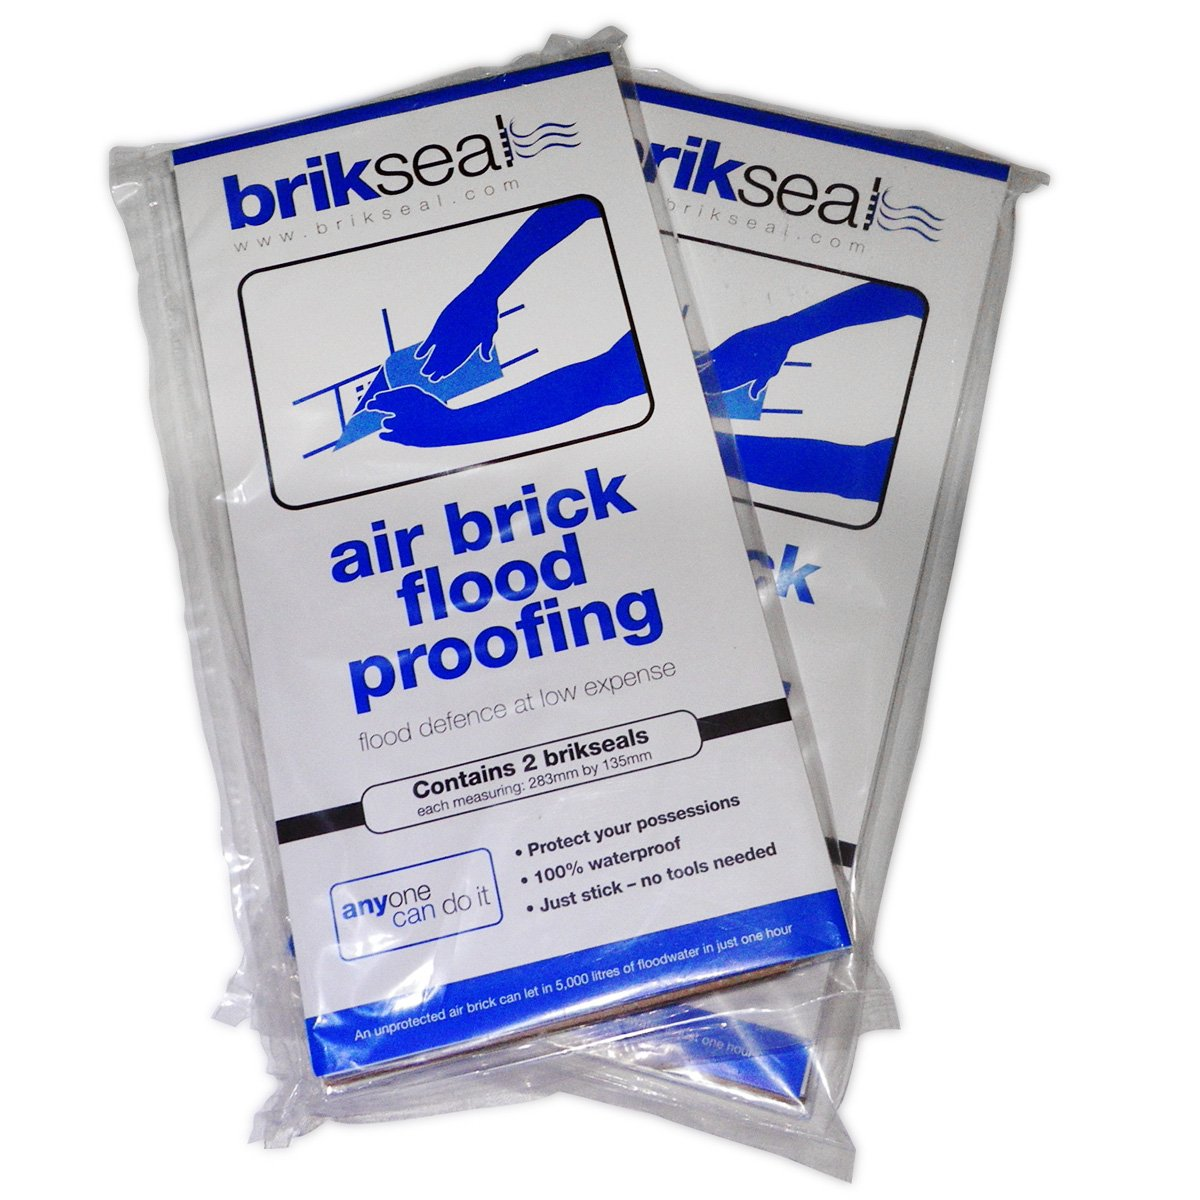 Brikseal Temporary Air Brick Seal (Pack of 2) Not applicable